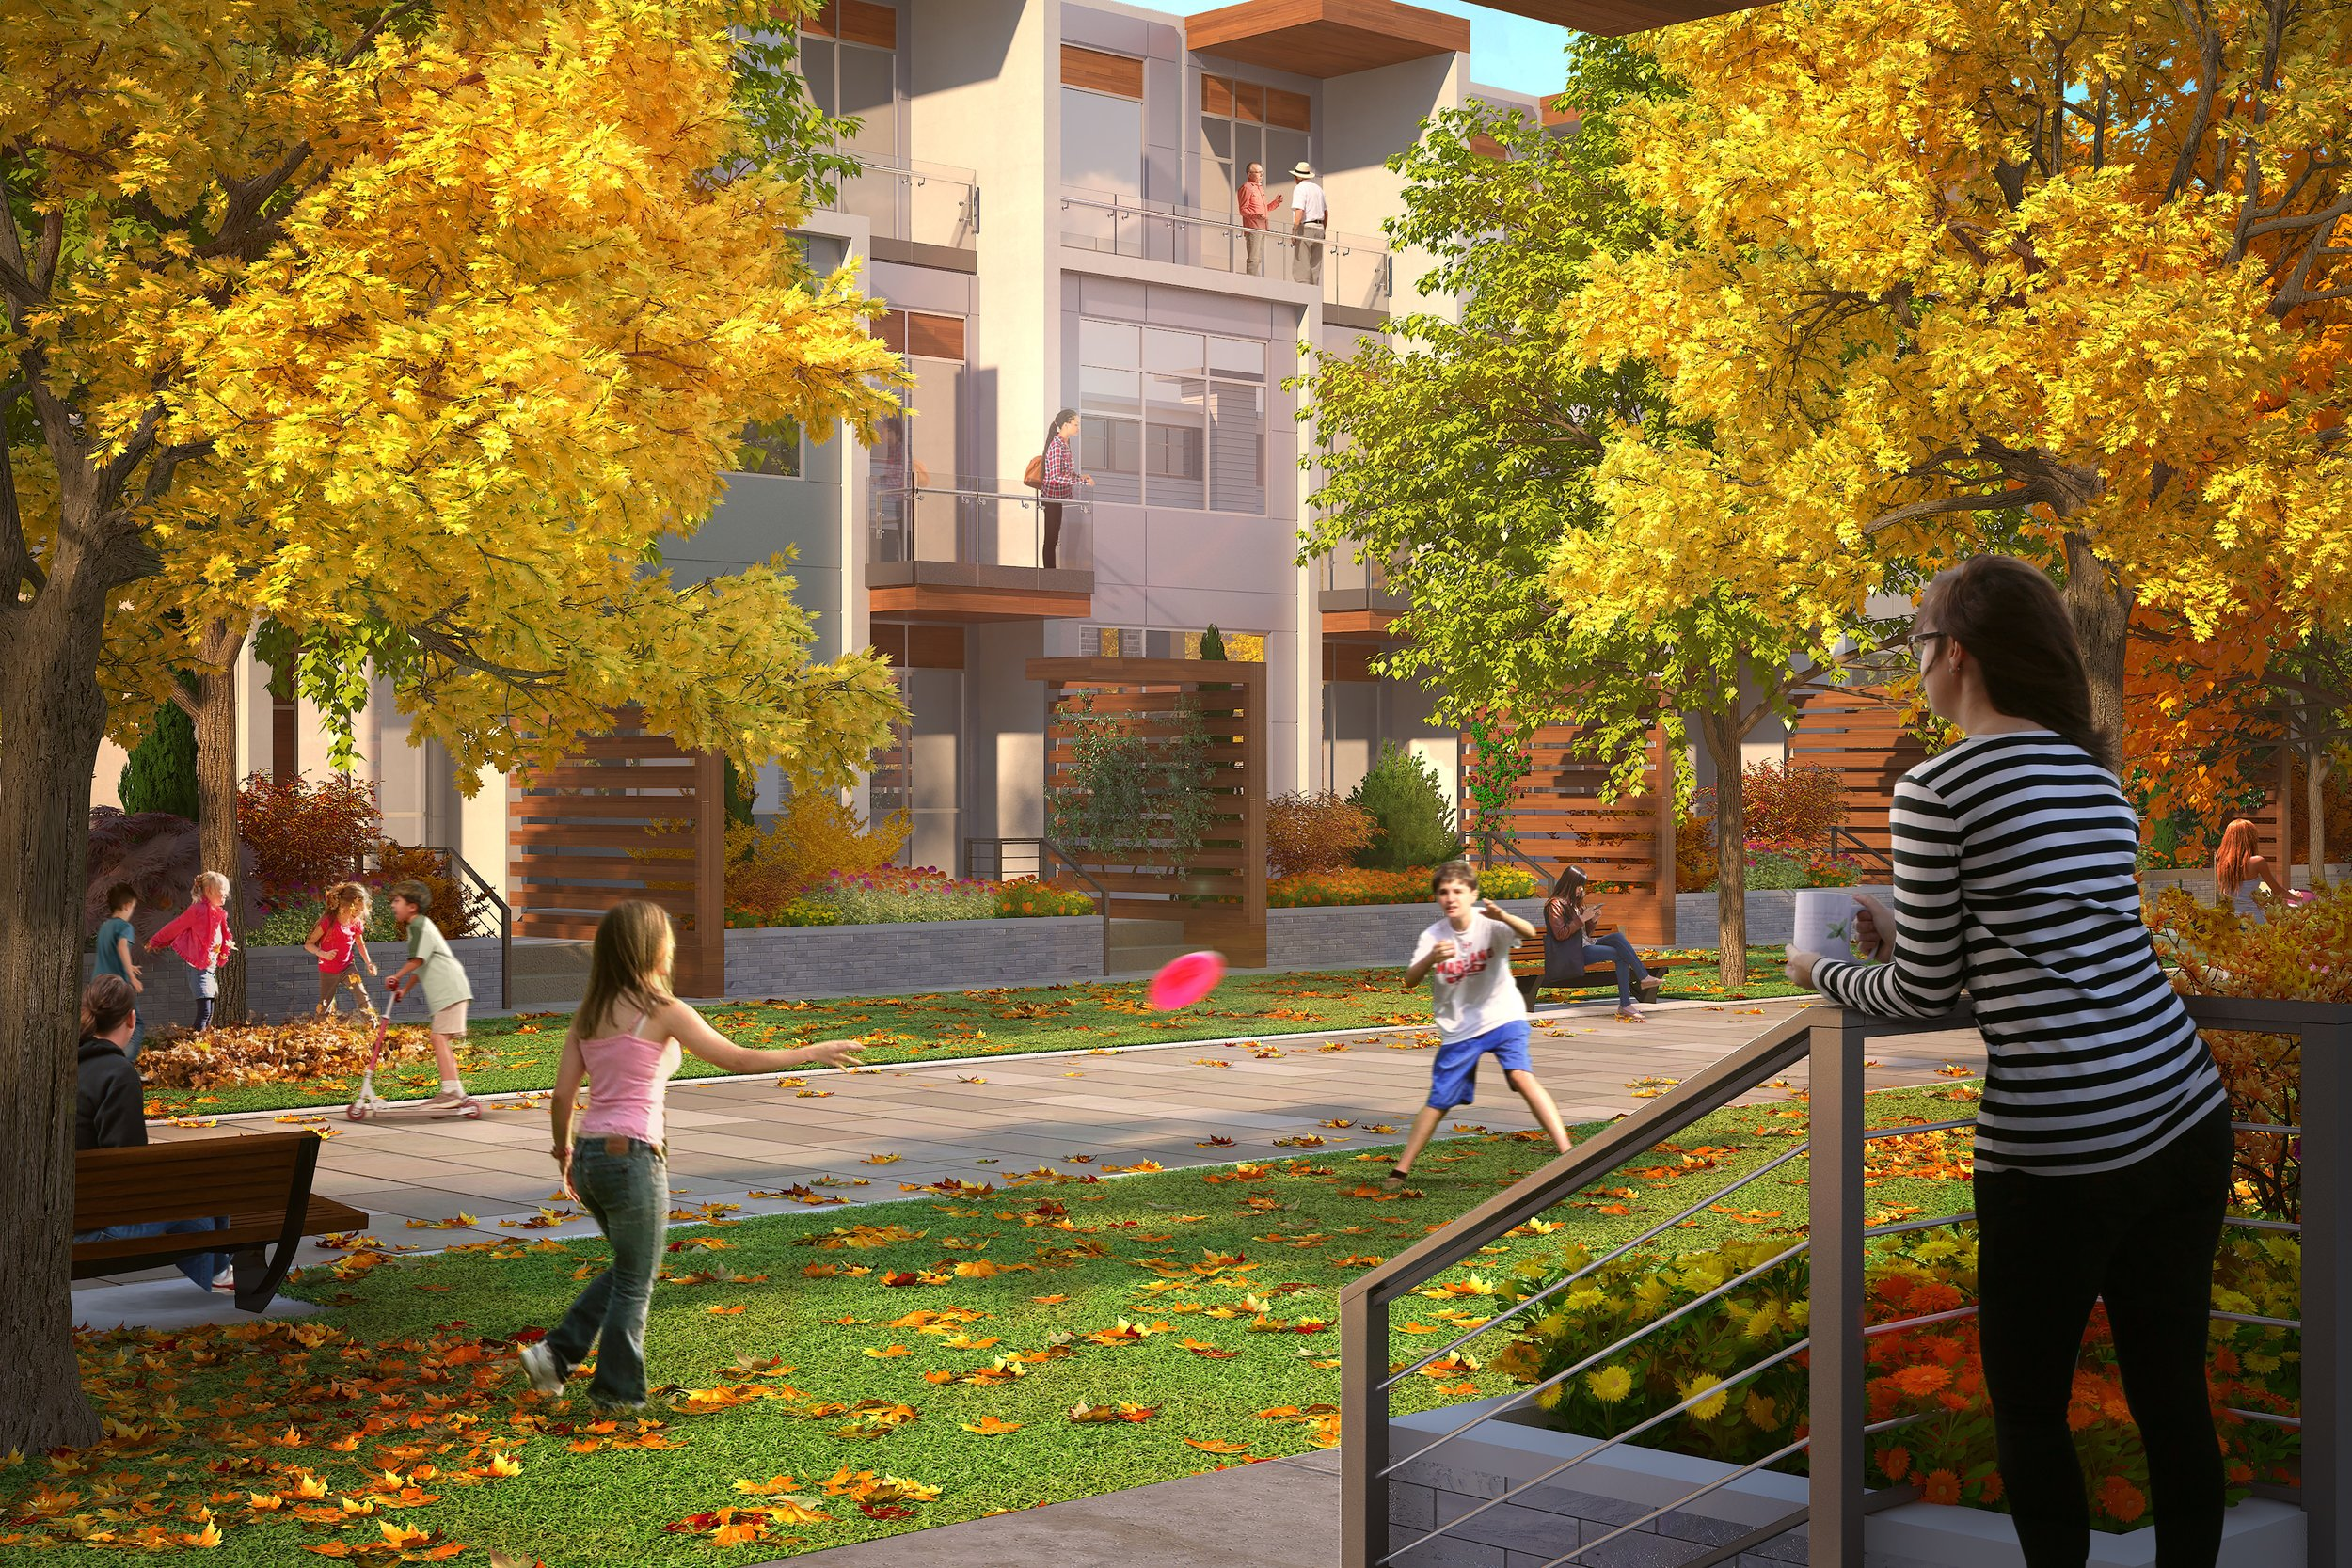 The Tarmac Townhomes face a public pathway